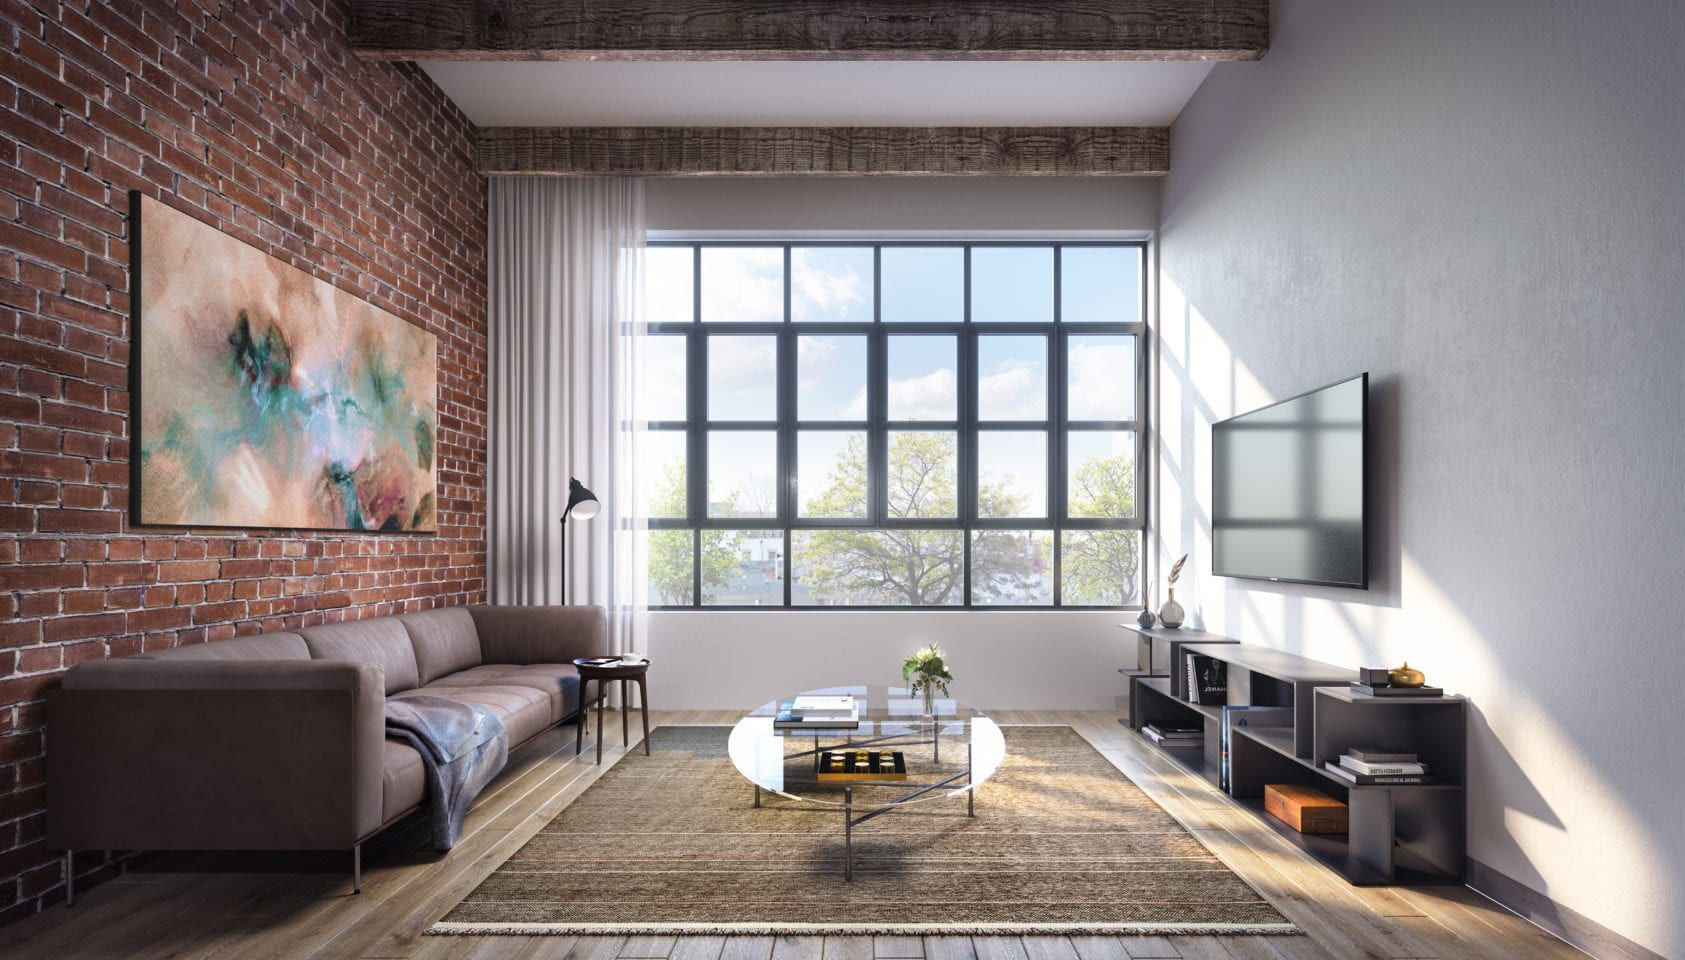 The Zipper Building, New To Market, 2 Bedrooms And Home Office And 2 Baths Photo 1 - MODERNSPACESNYC-216511